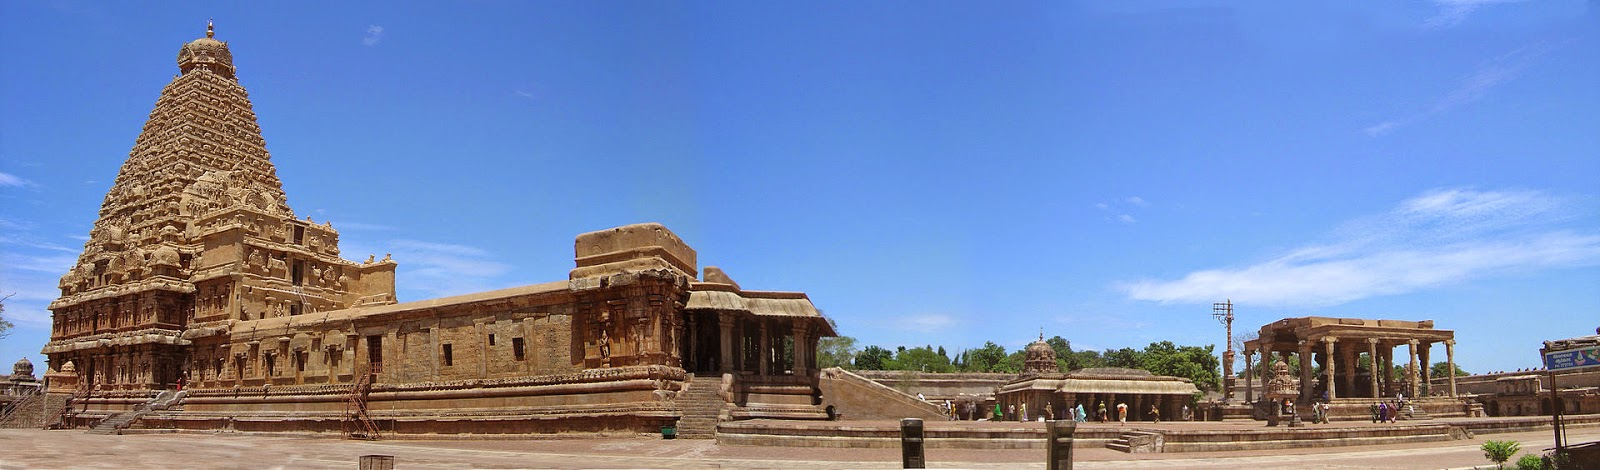 panorama of Bragatheeswarar temple, India